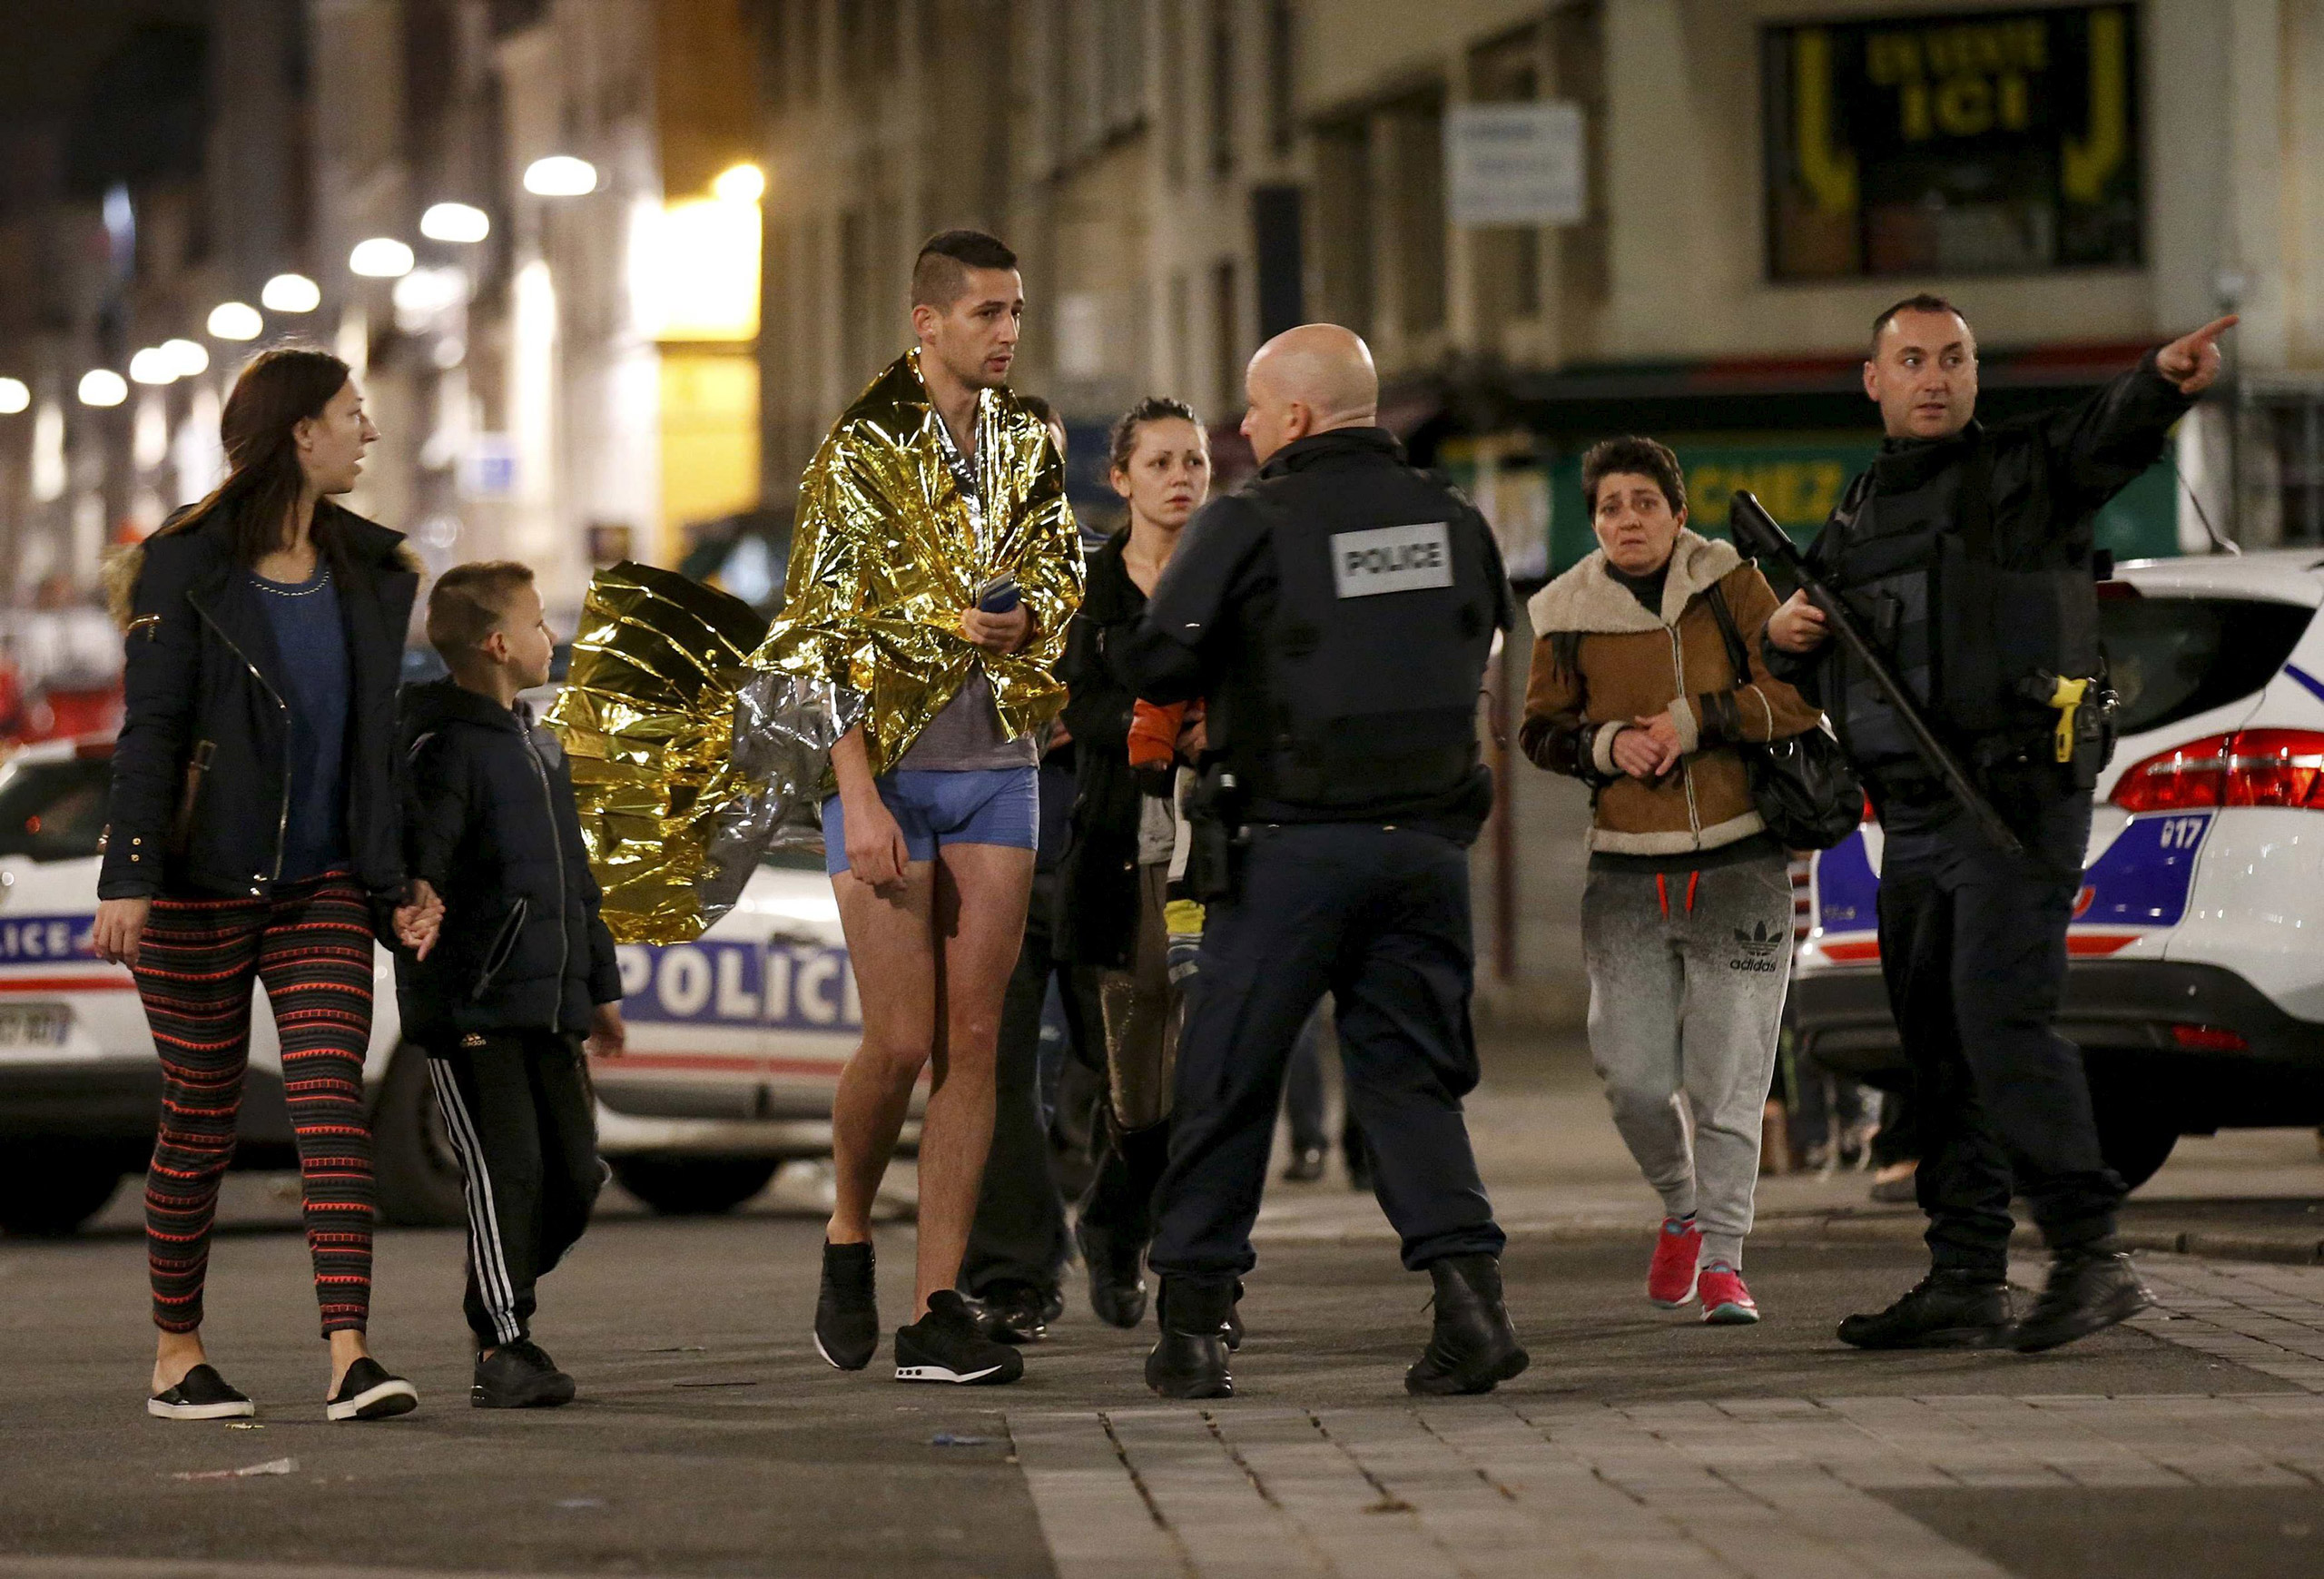 French police evacuate residents during an operation to catch fugitives from Friday night's deadly attacks in Saint-Denis, outside of Paris, on Nov. 18, 2015.